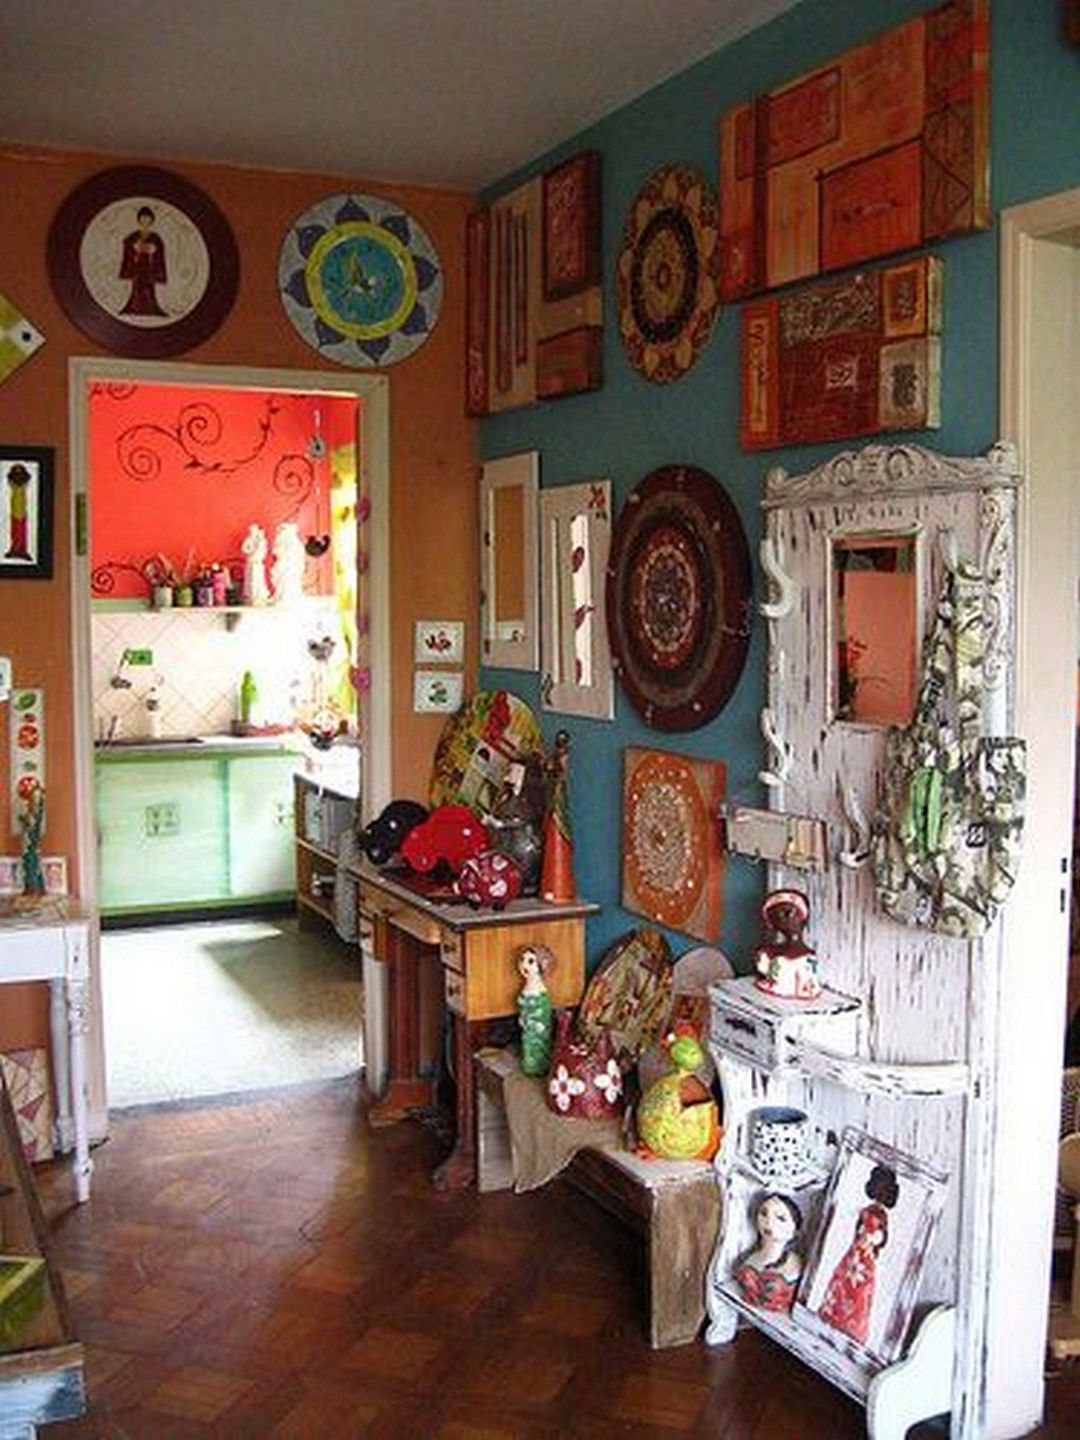 7 top bohemian style decor tips with adorable interior ideas unique home decor bohemian decor on hippie kitchen ideas boho chic id=66701